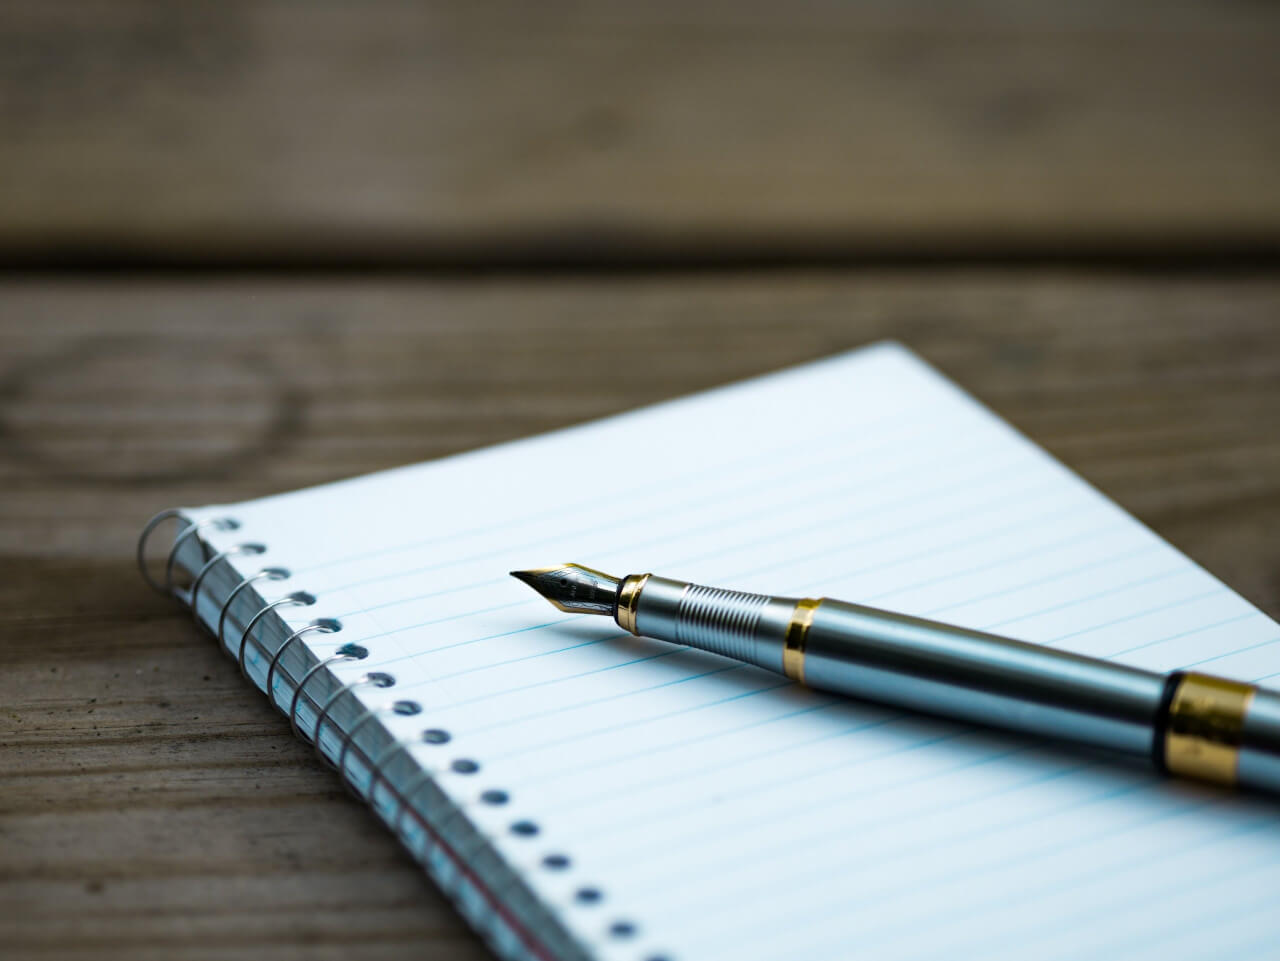 What to include in cover letters